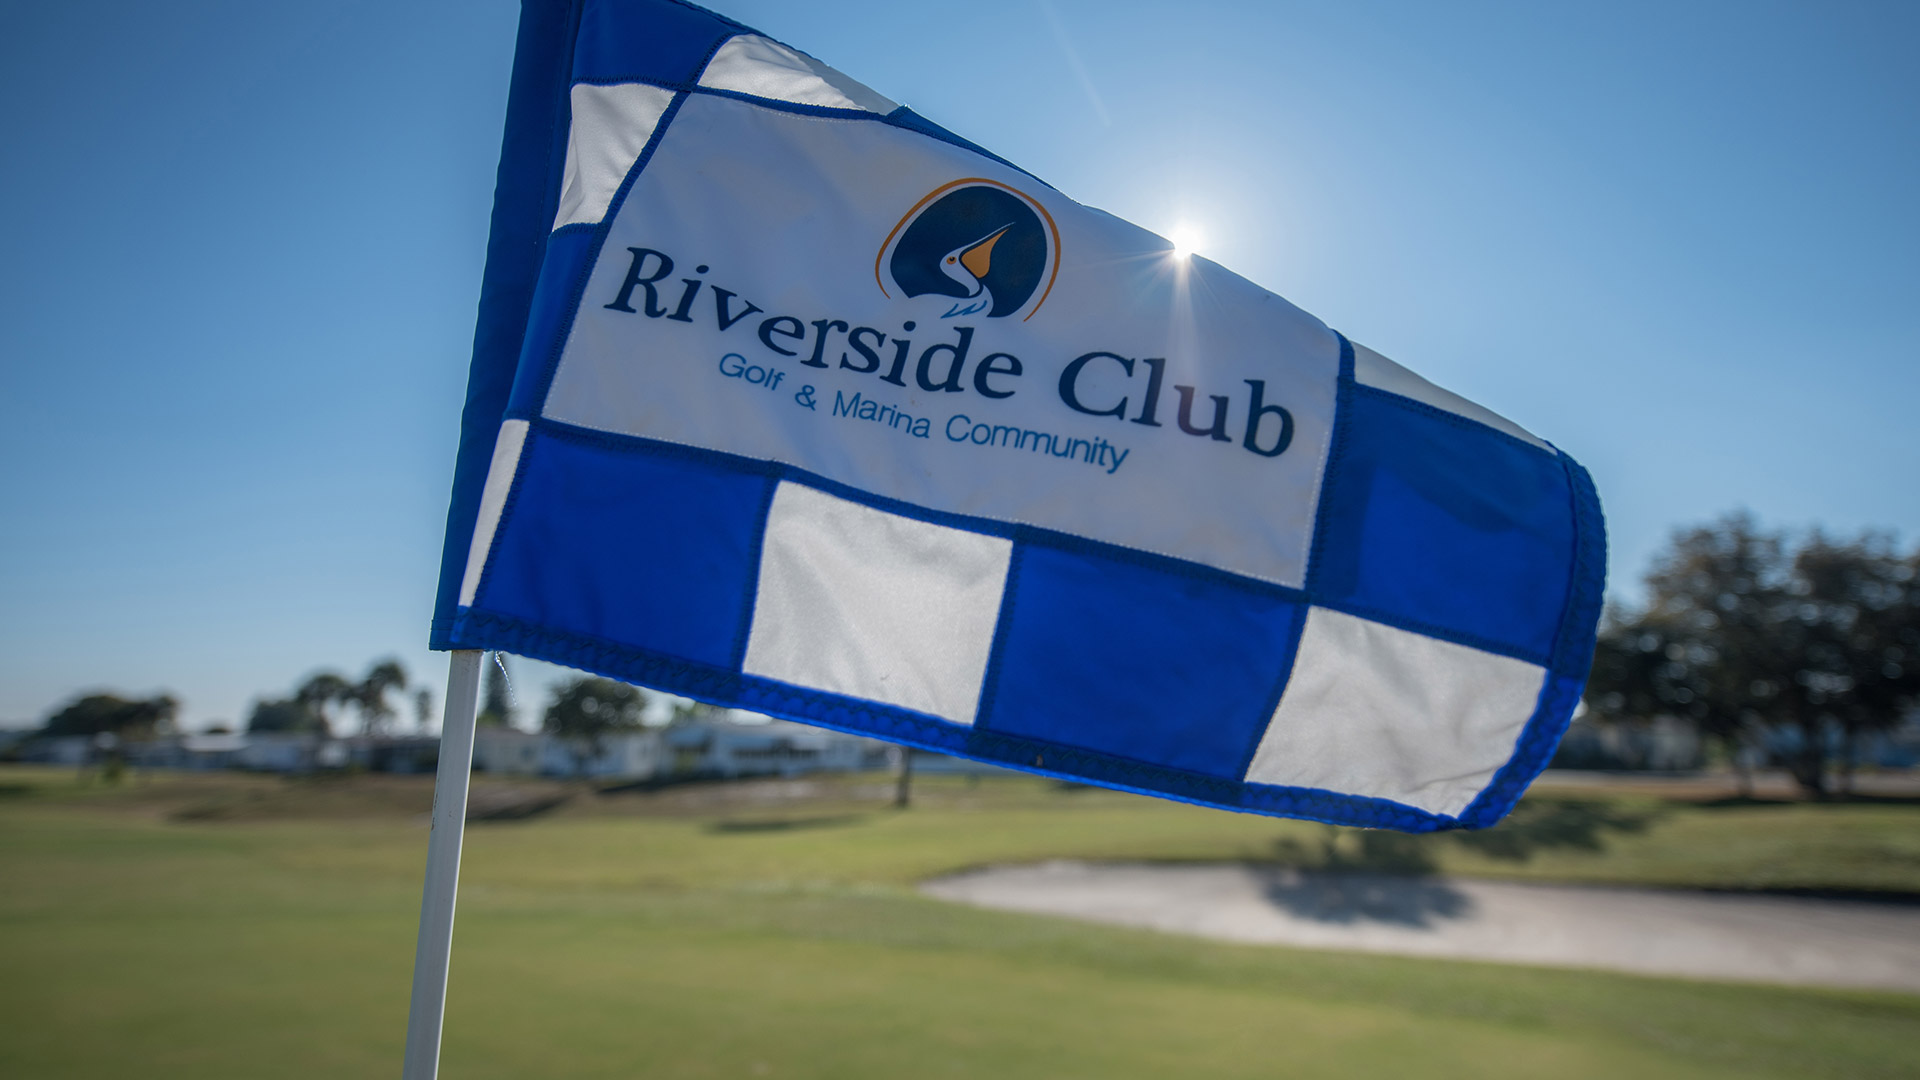 Riverside Club 55+ Golf, Marina and Manufactured Homes Community Blue Checkered Hole Flag in Ruskin, FL